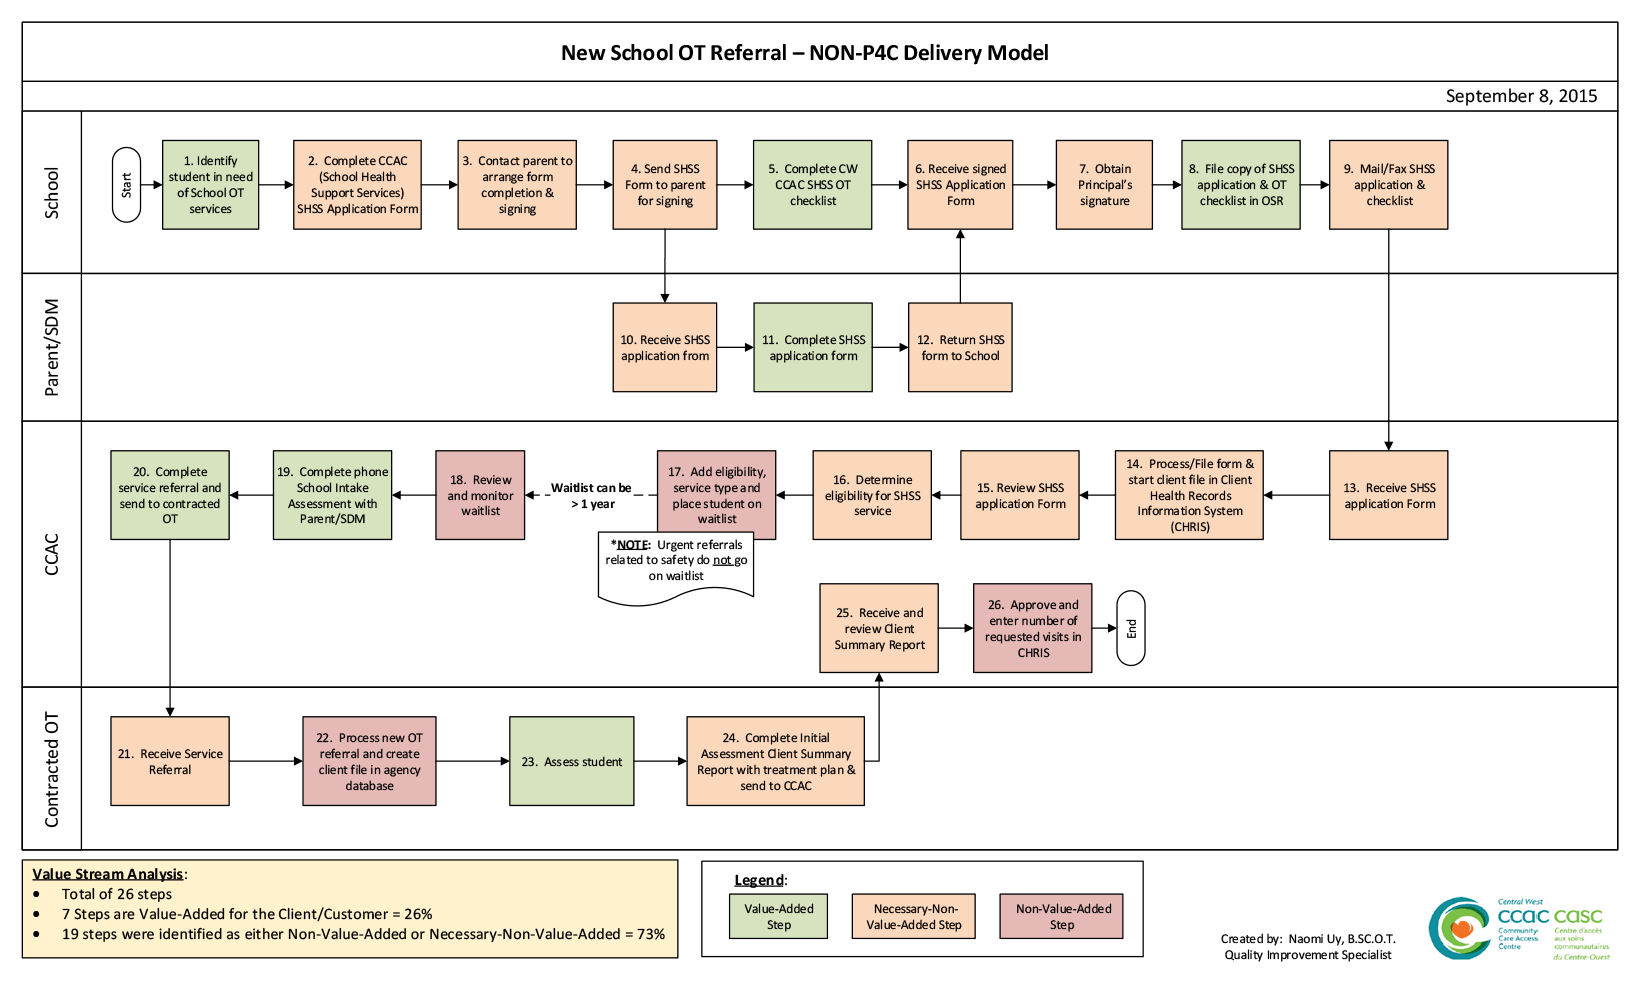 Figure: Non-P4C Process Map